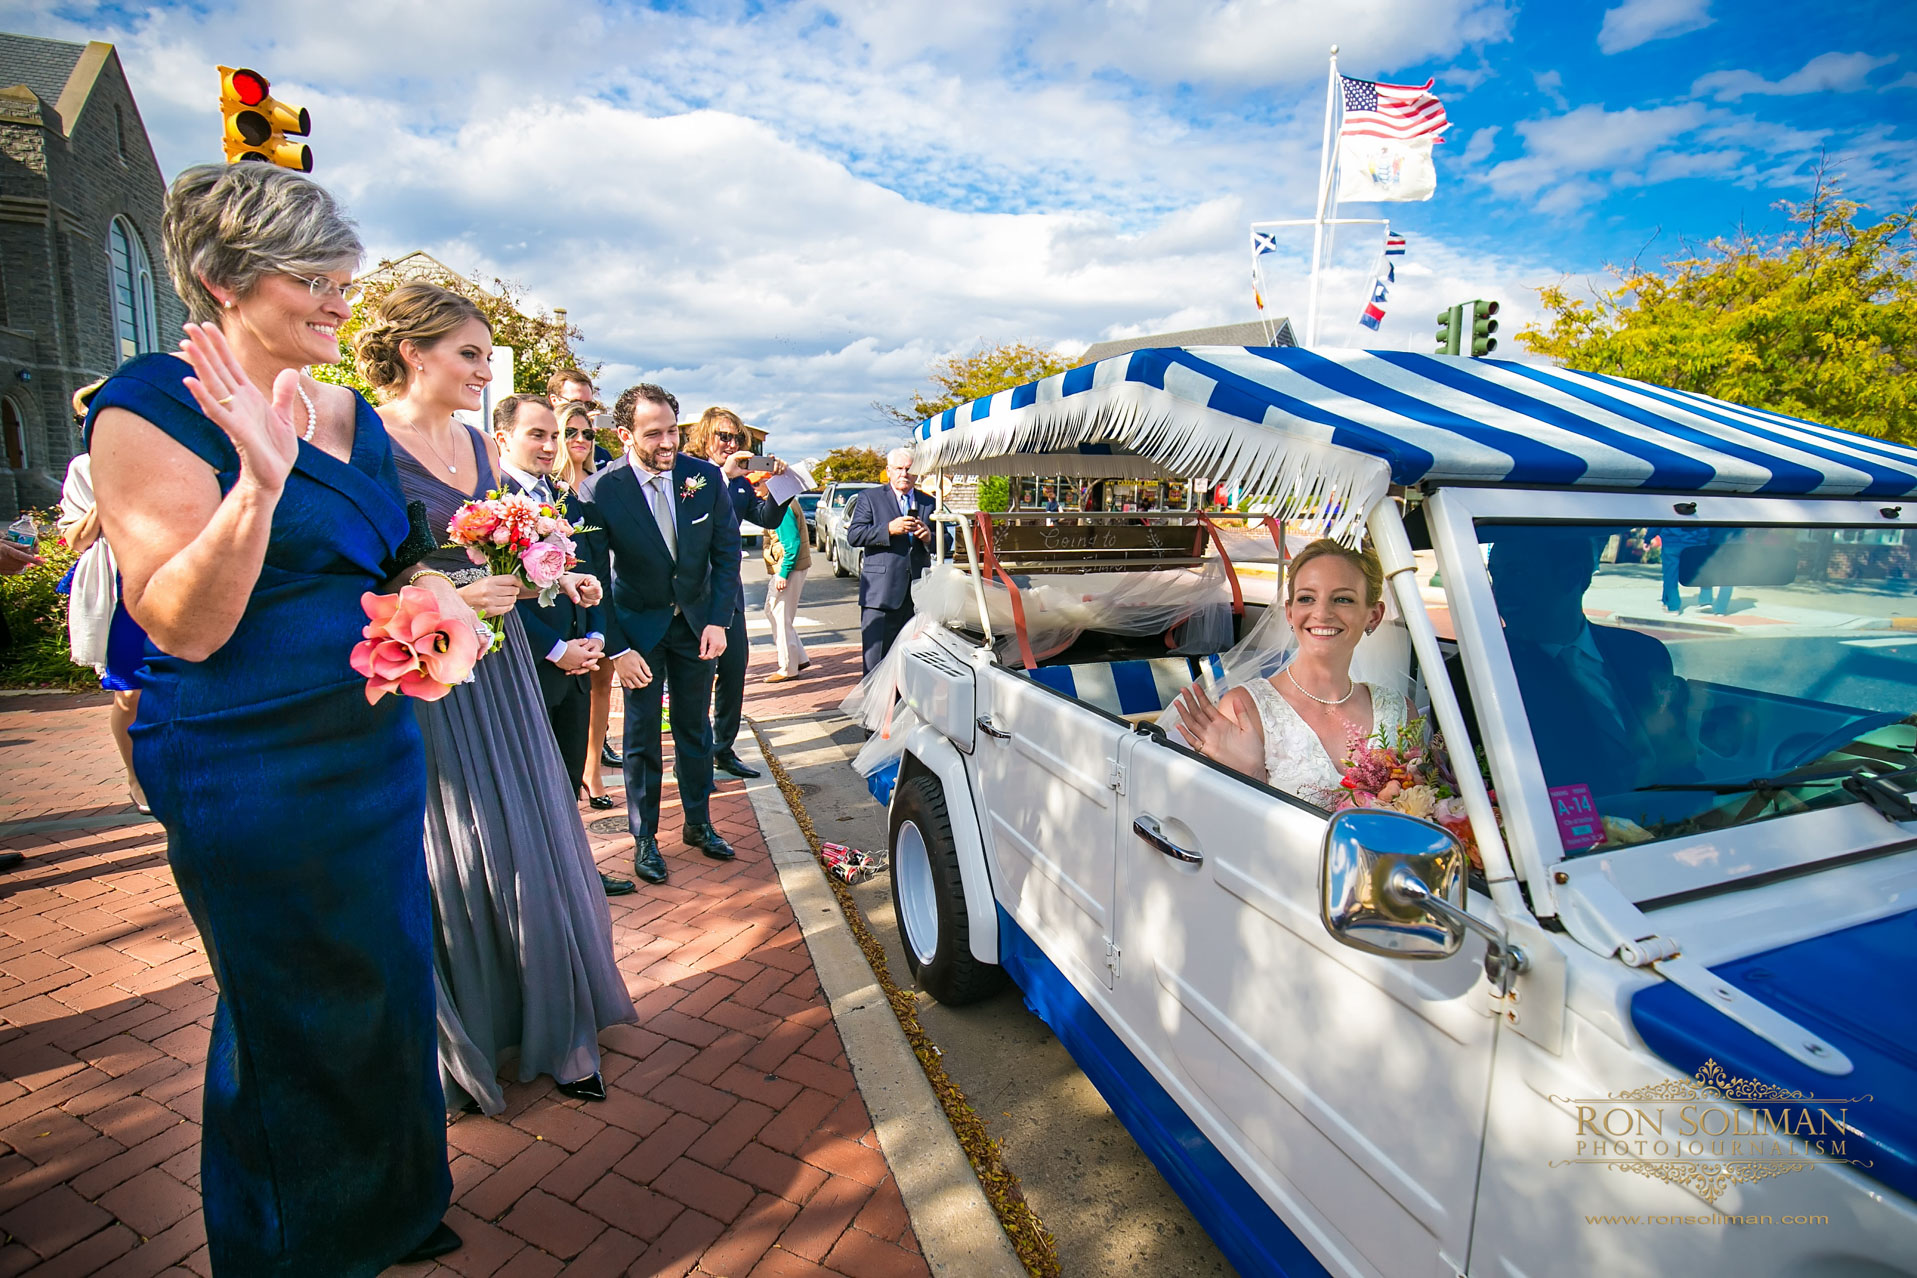 1972 Volkswagen wedding car